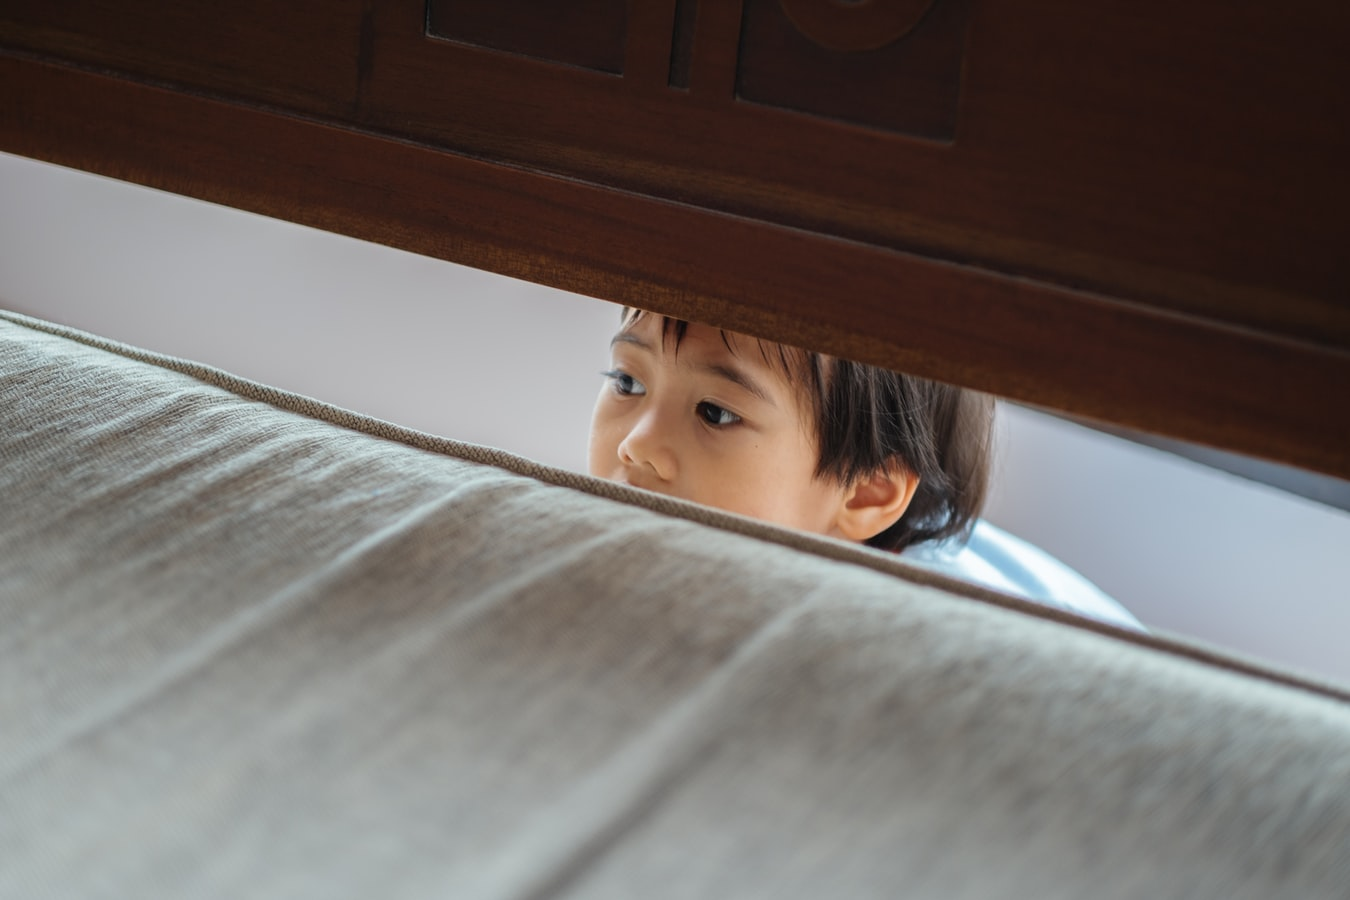 A person looking through a small gap.